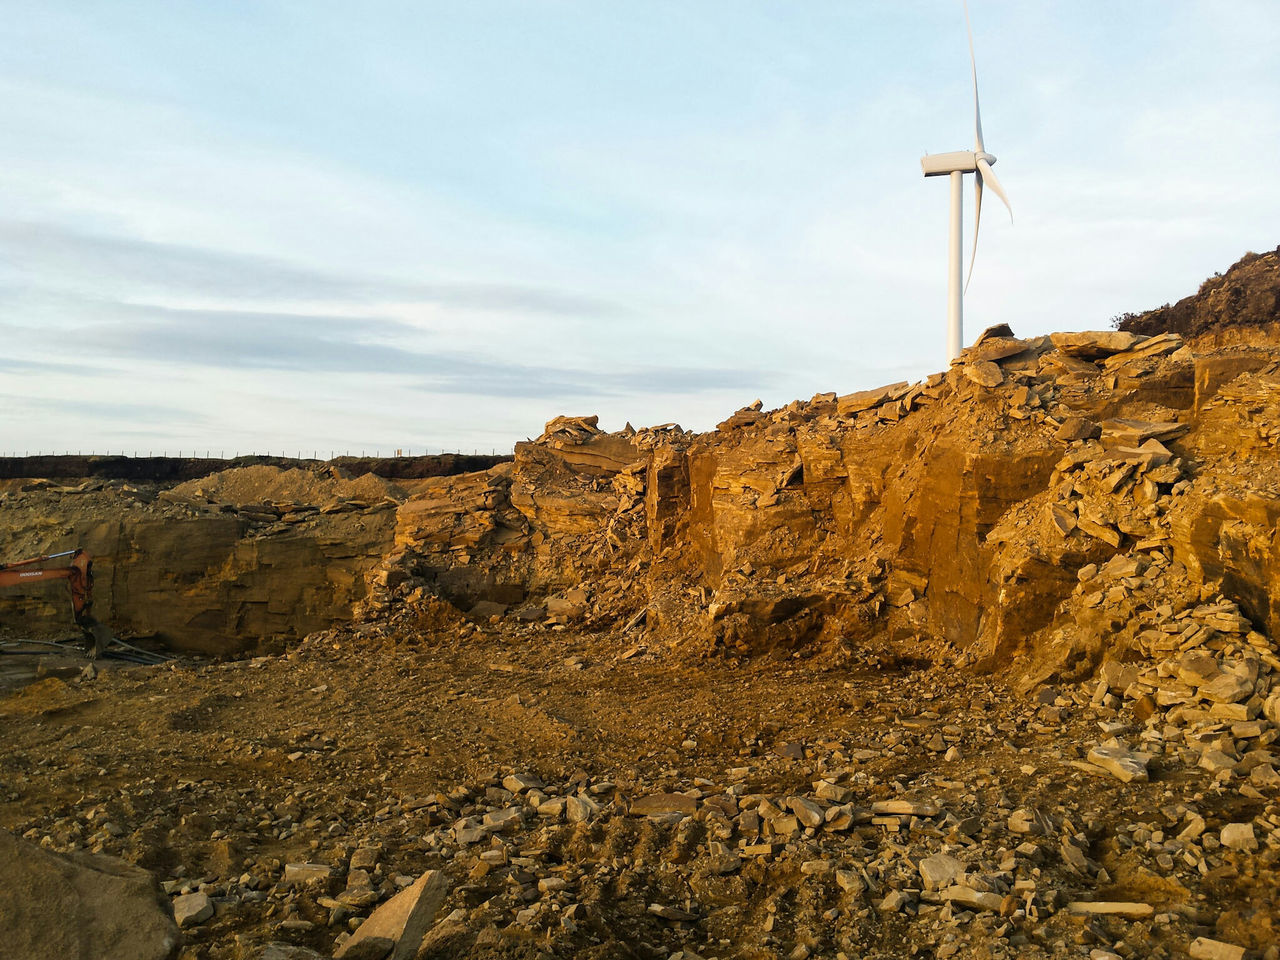 Cloud - Sky Sky Construction Site No People Outdoors Day Nature Scenics The Great Outdoors - 2017 EyeEm Awards Sunlight Quarry Earth Site Work Stone Rock BYOPaper! Landscapes Landscape Mountain Rock - Object Windmill Turbine Wind Turbine Eco